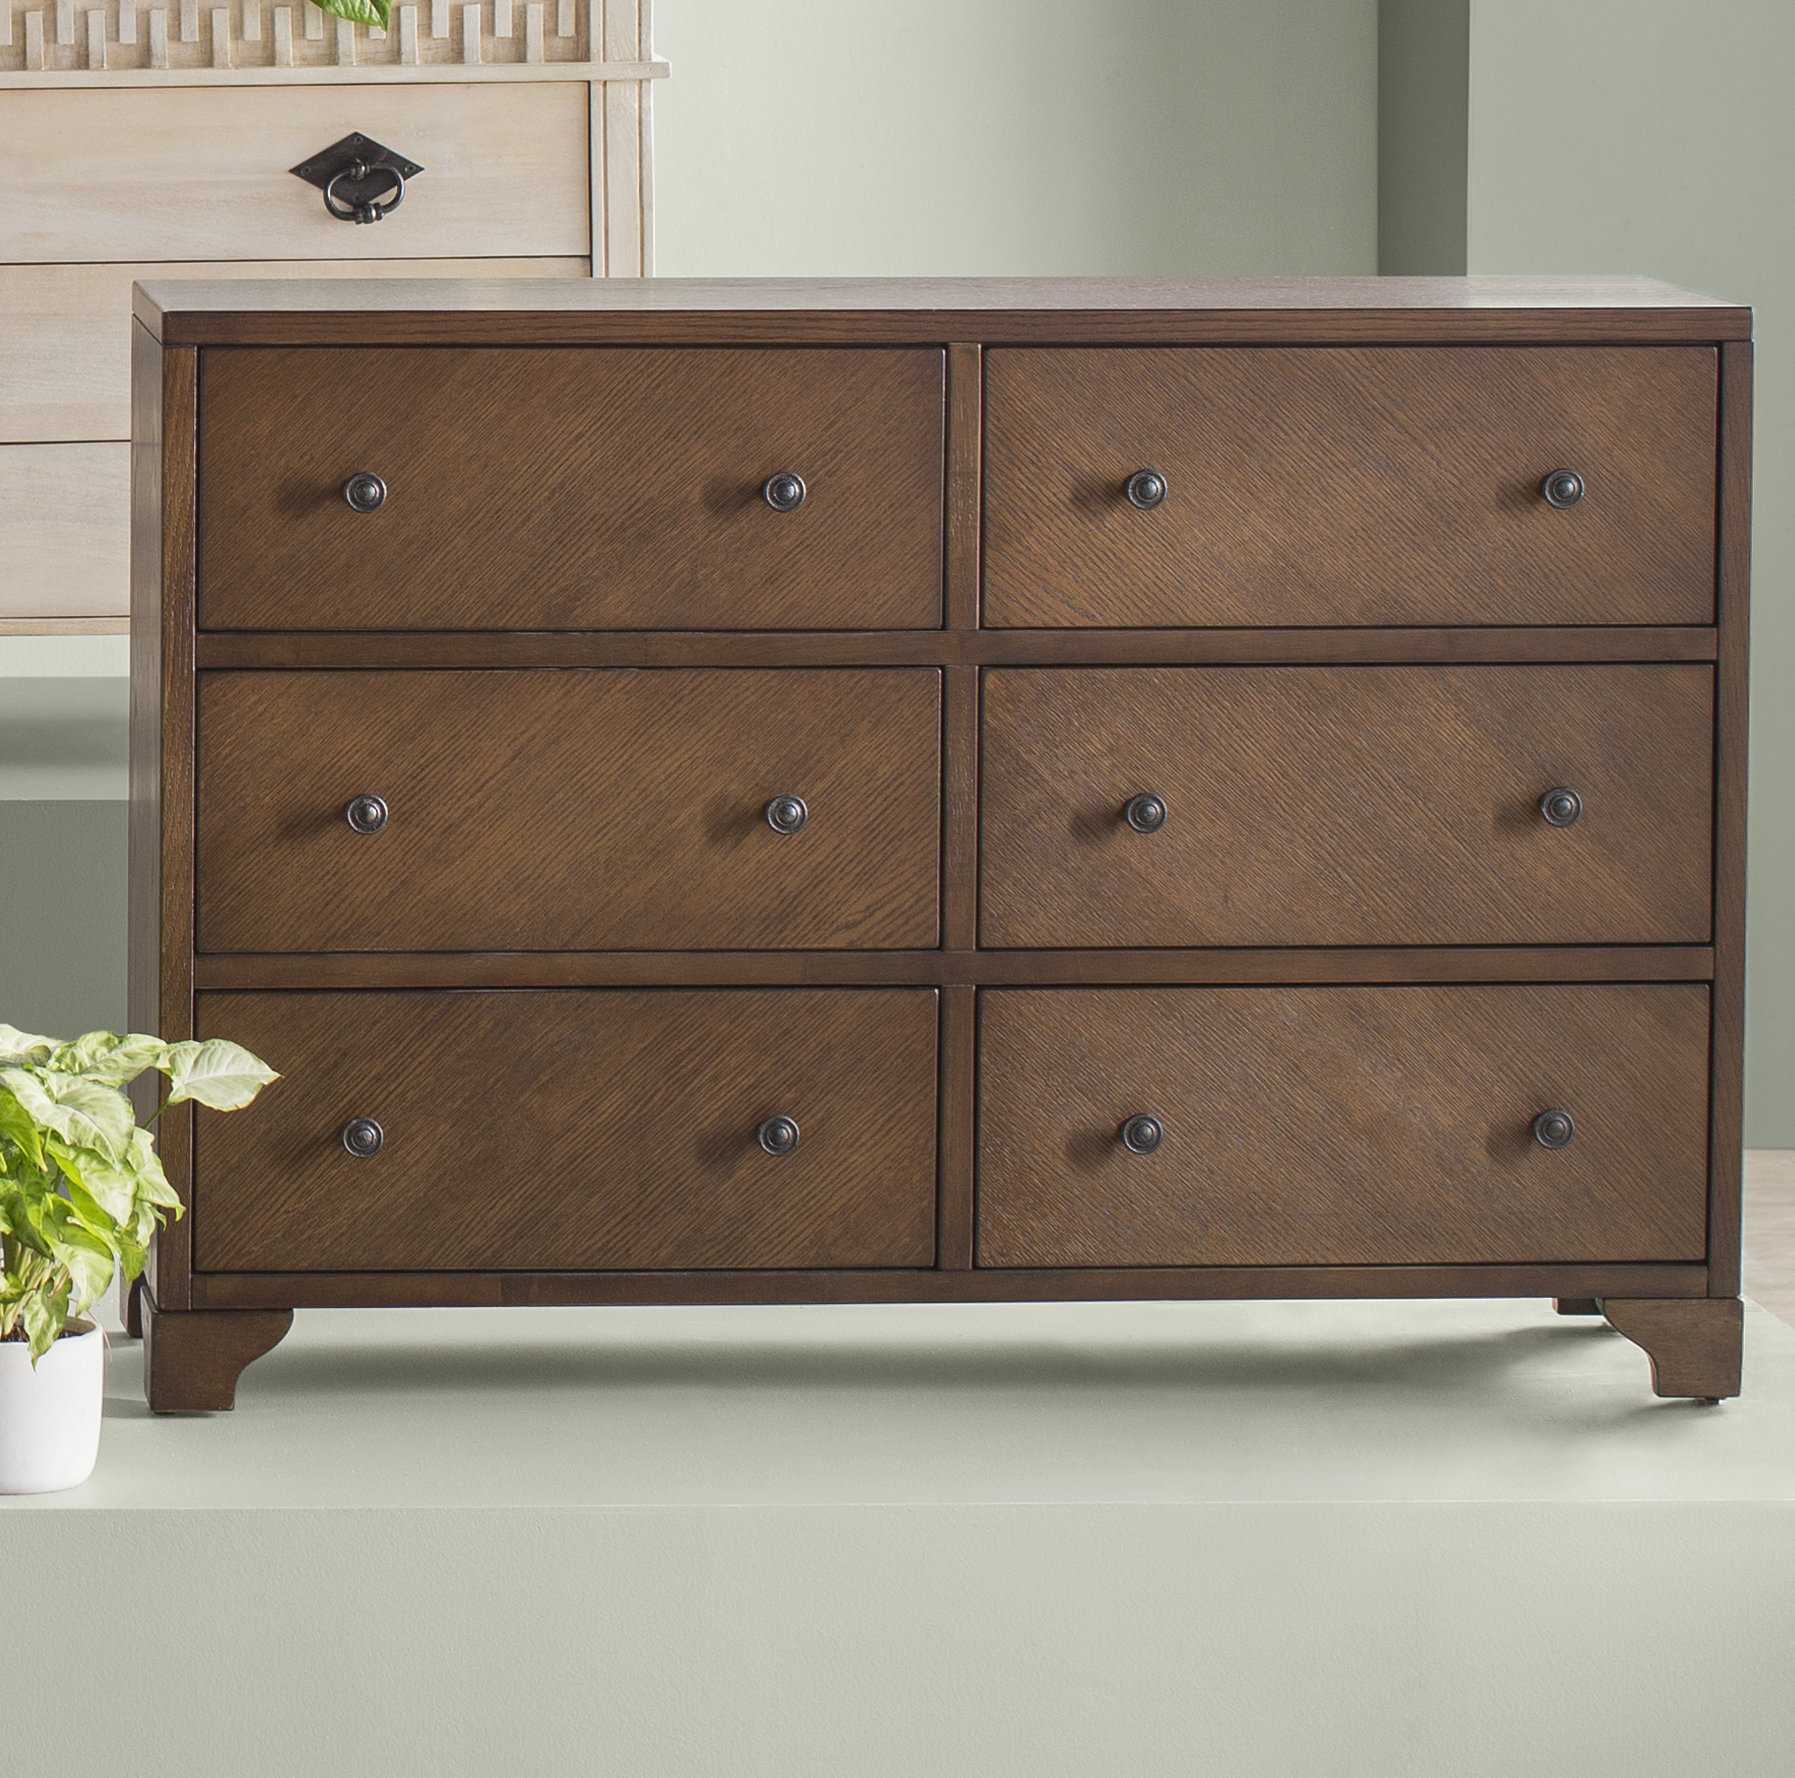 Naylor Sideboard With Recent Whitten Sideboards (#13 of 20)